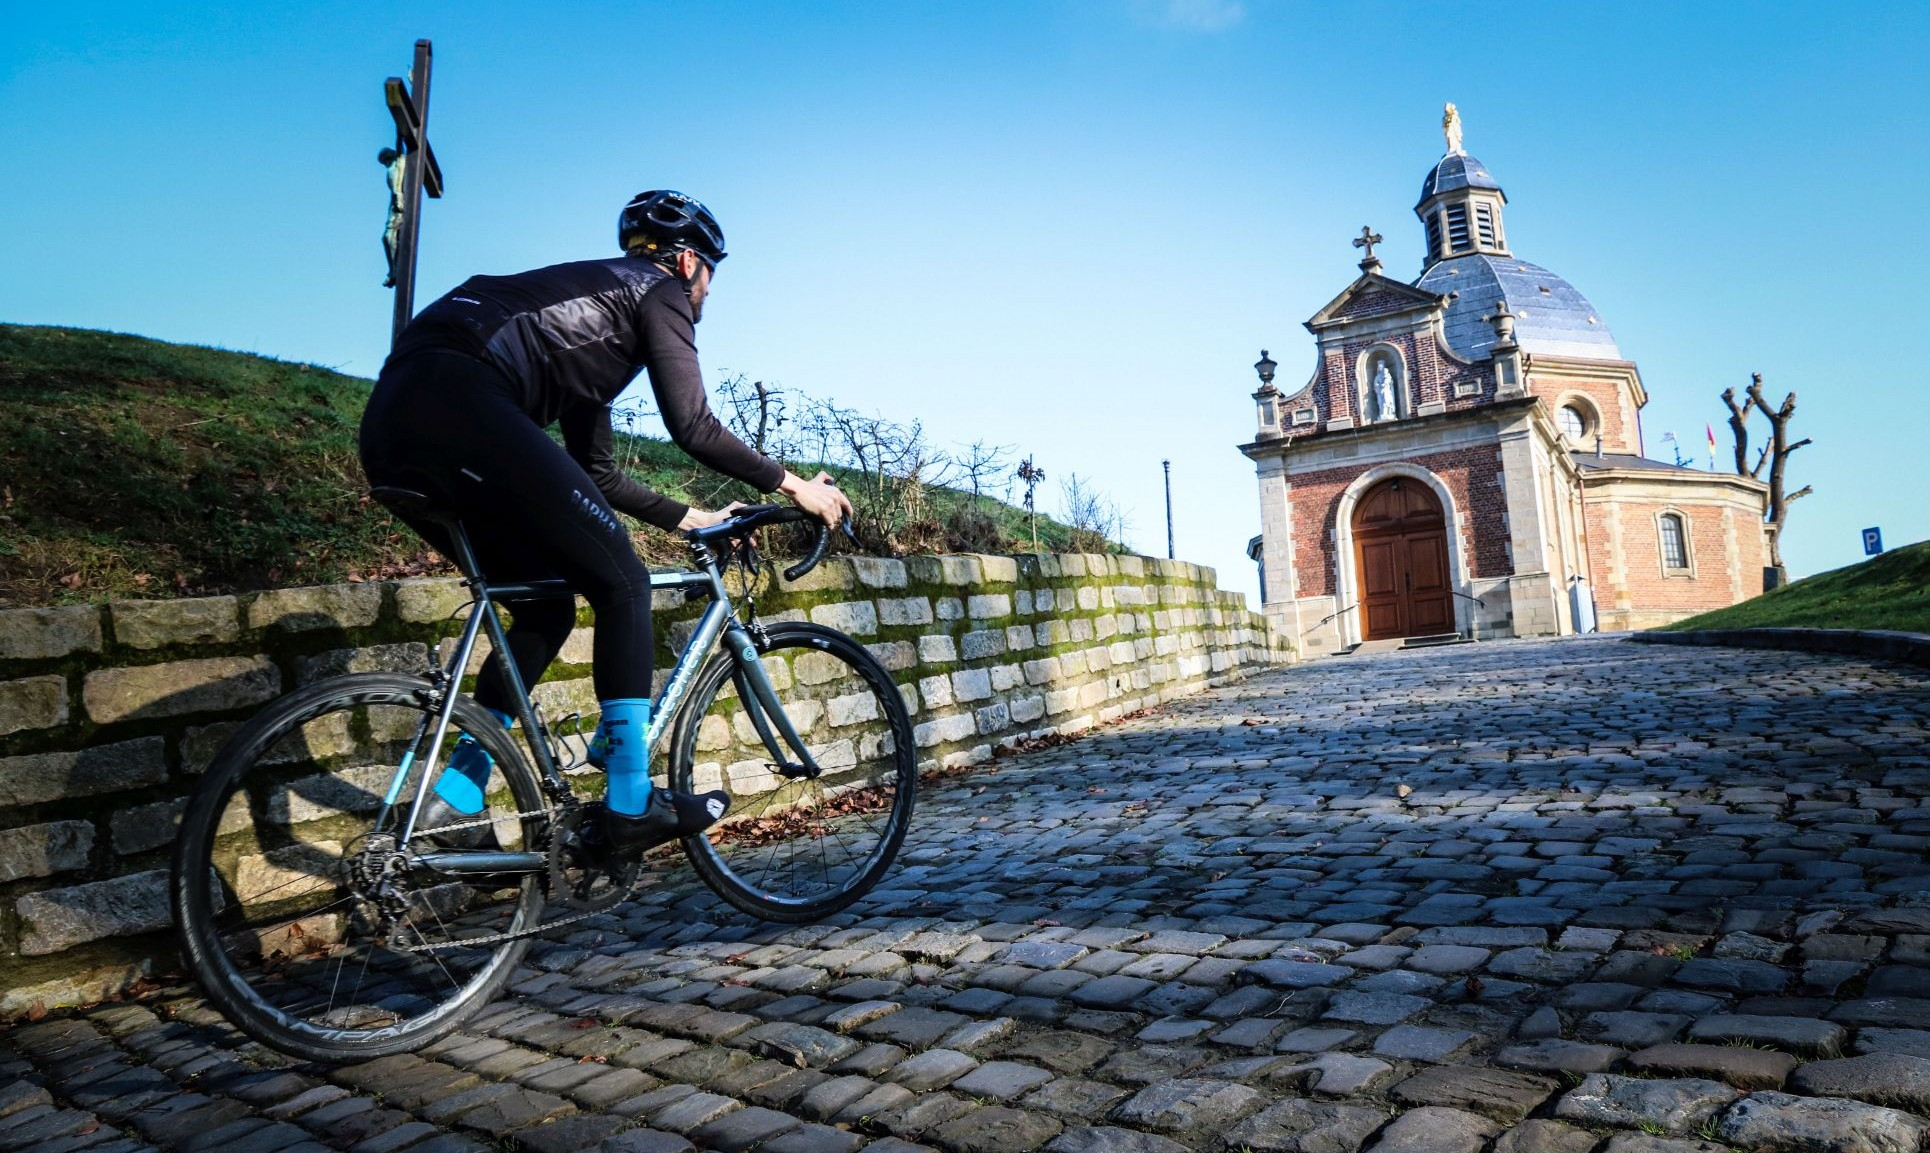 Kapelmuur cycling in flanders Muur